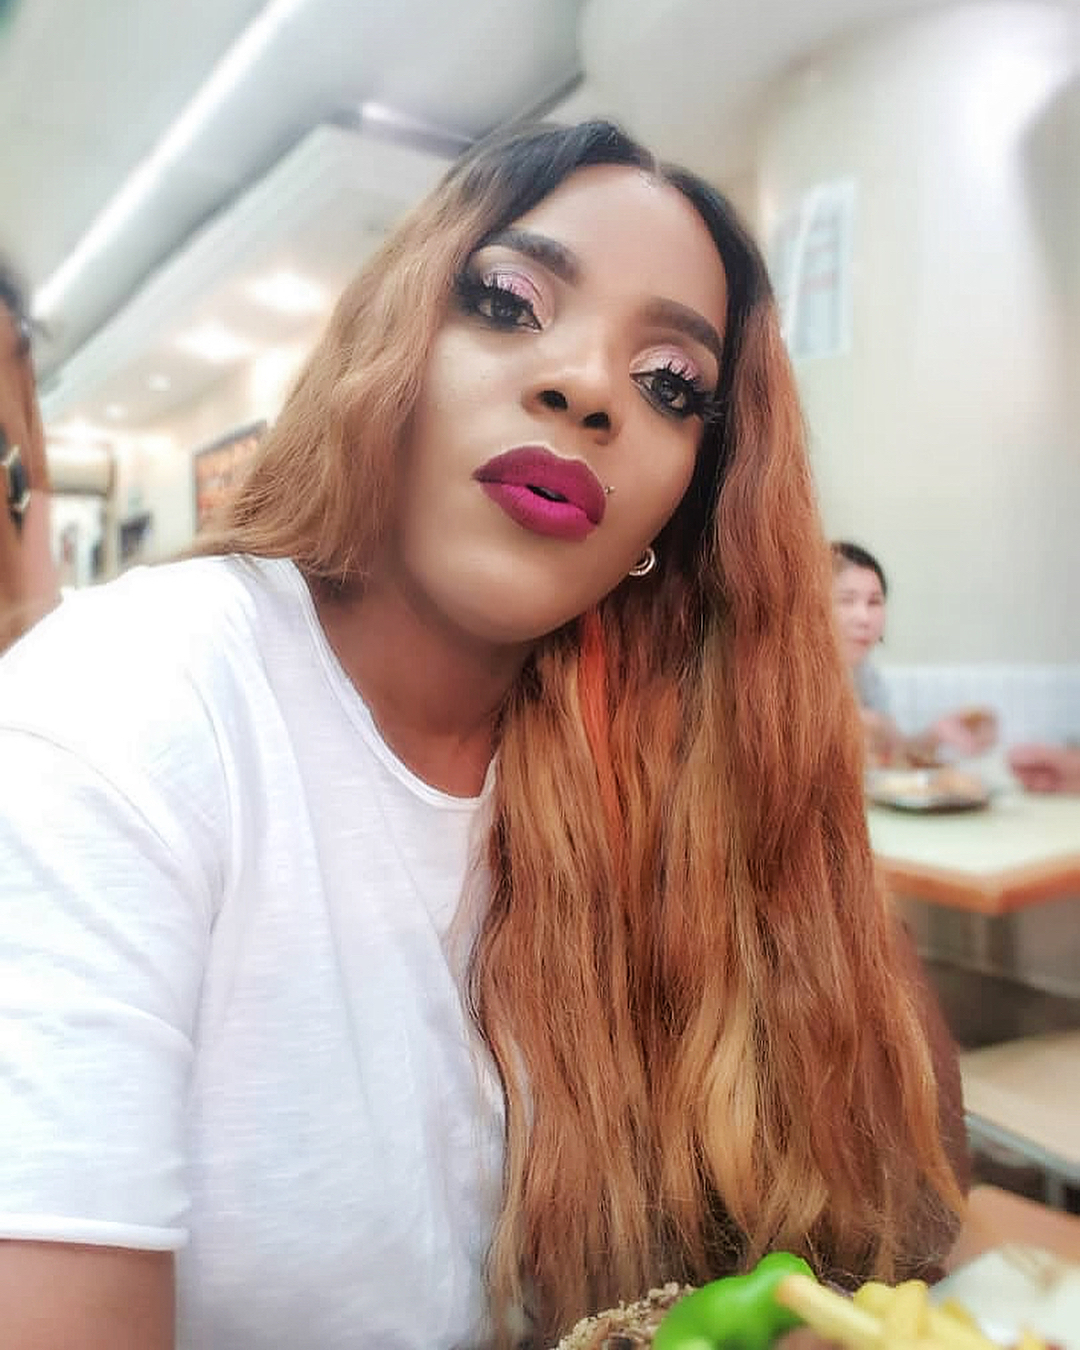 i-can-never-recommend-my-ex-to-a-friend-says-empress-njama-2